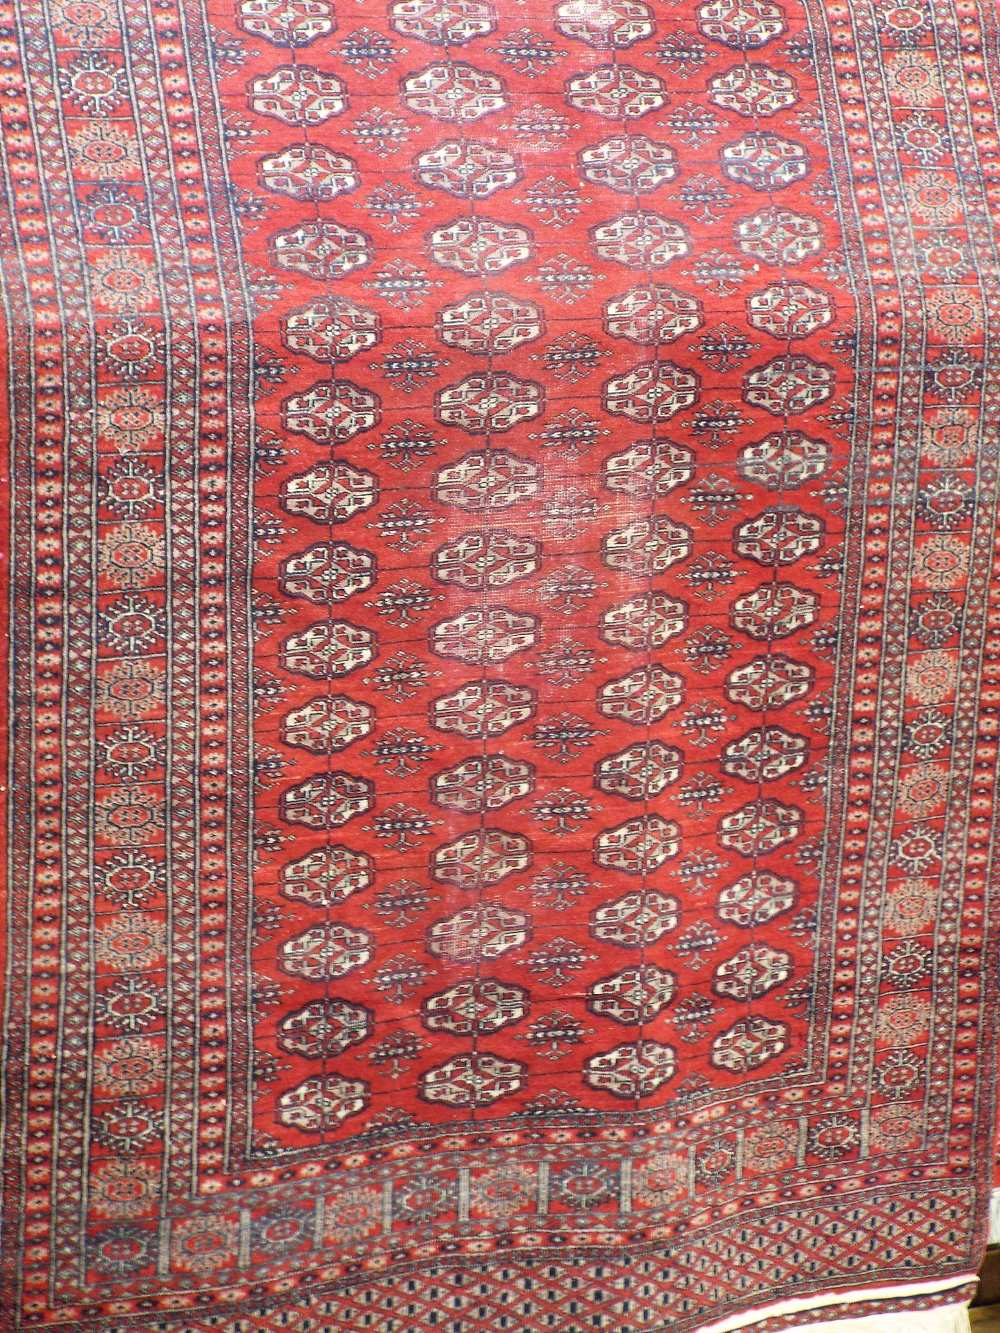 Lot 631 - Bokhara runner with typical geometric medallion decoration upon a red ground, 480 x 130 cm